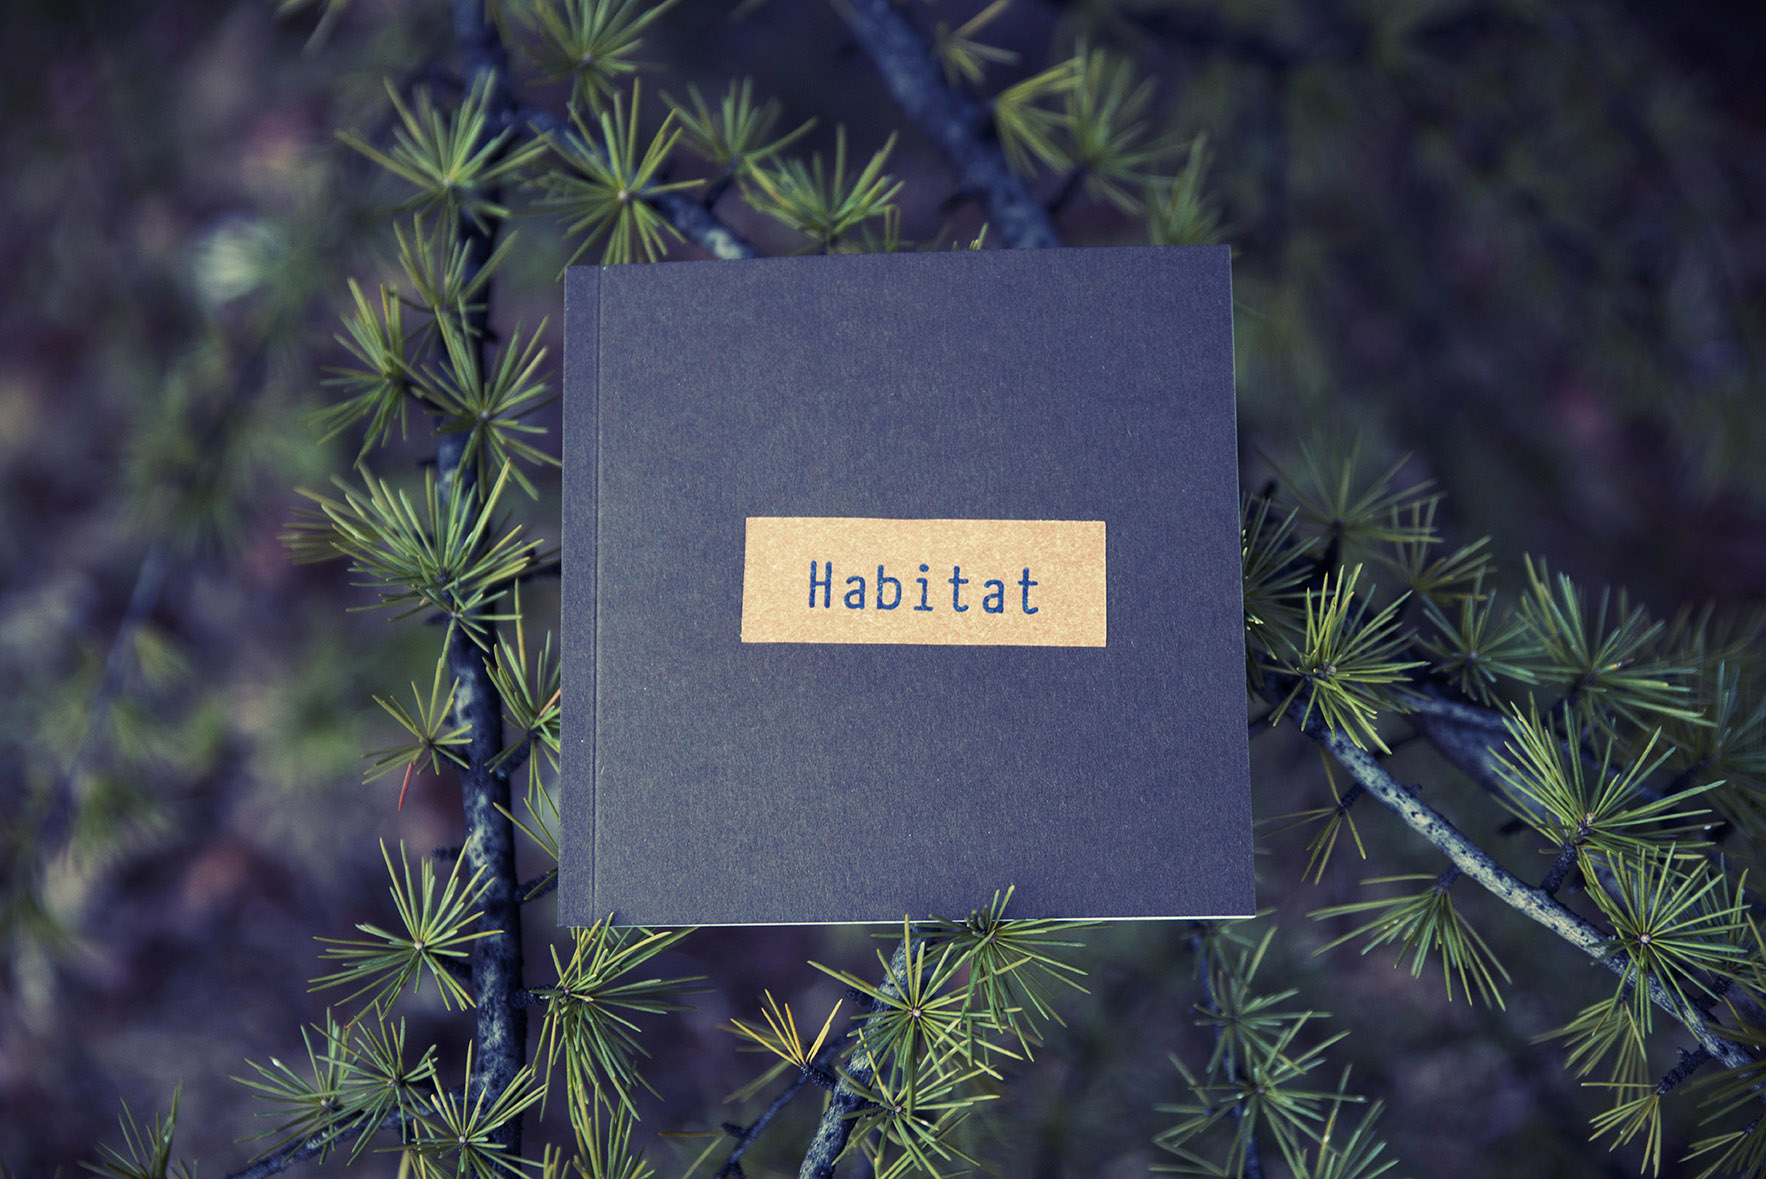 Habitat - Body & Landscape Awareness